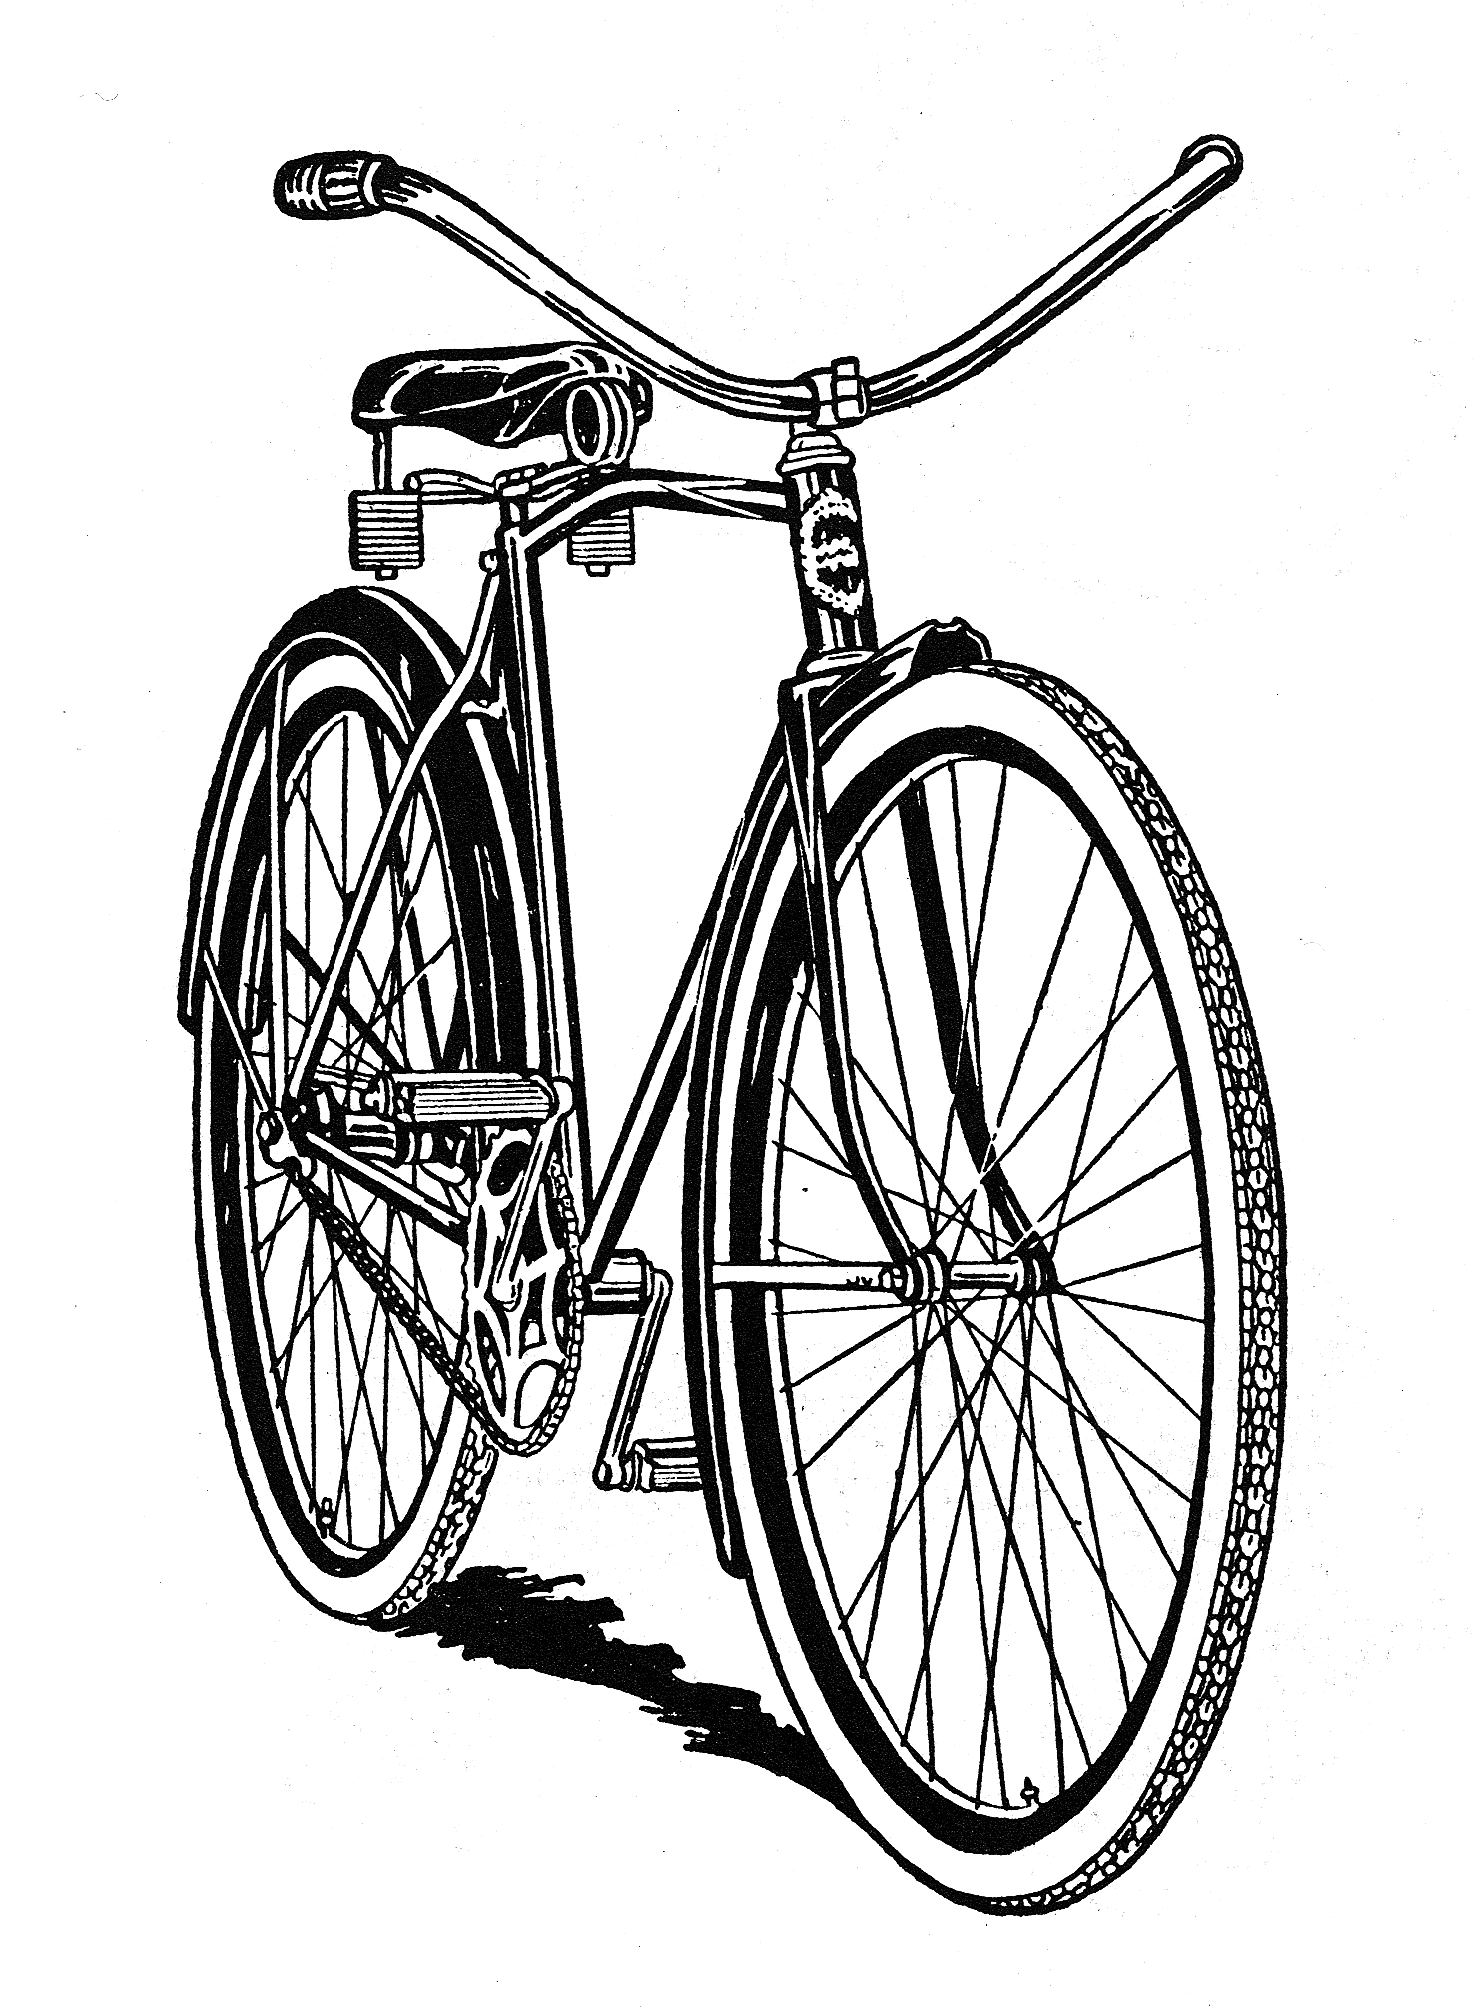 Cycle clipart old bicycle. Public domain bike sweet